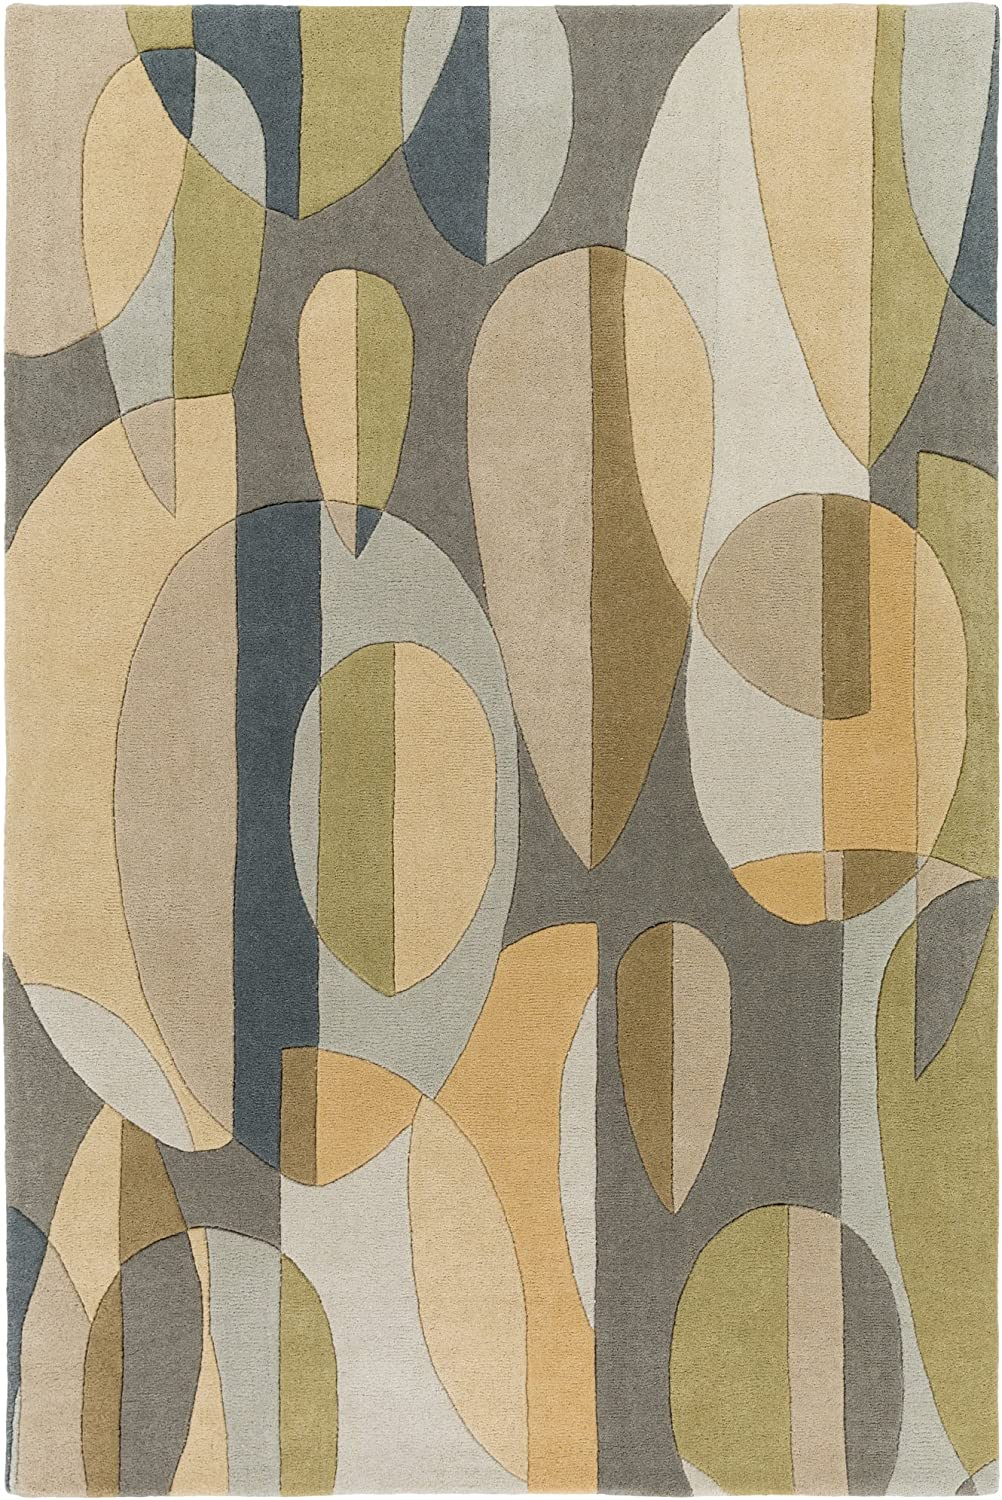 Limited price sale Surya Forum Area Rug 9' 12' x Green Blue Miami Mall